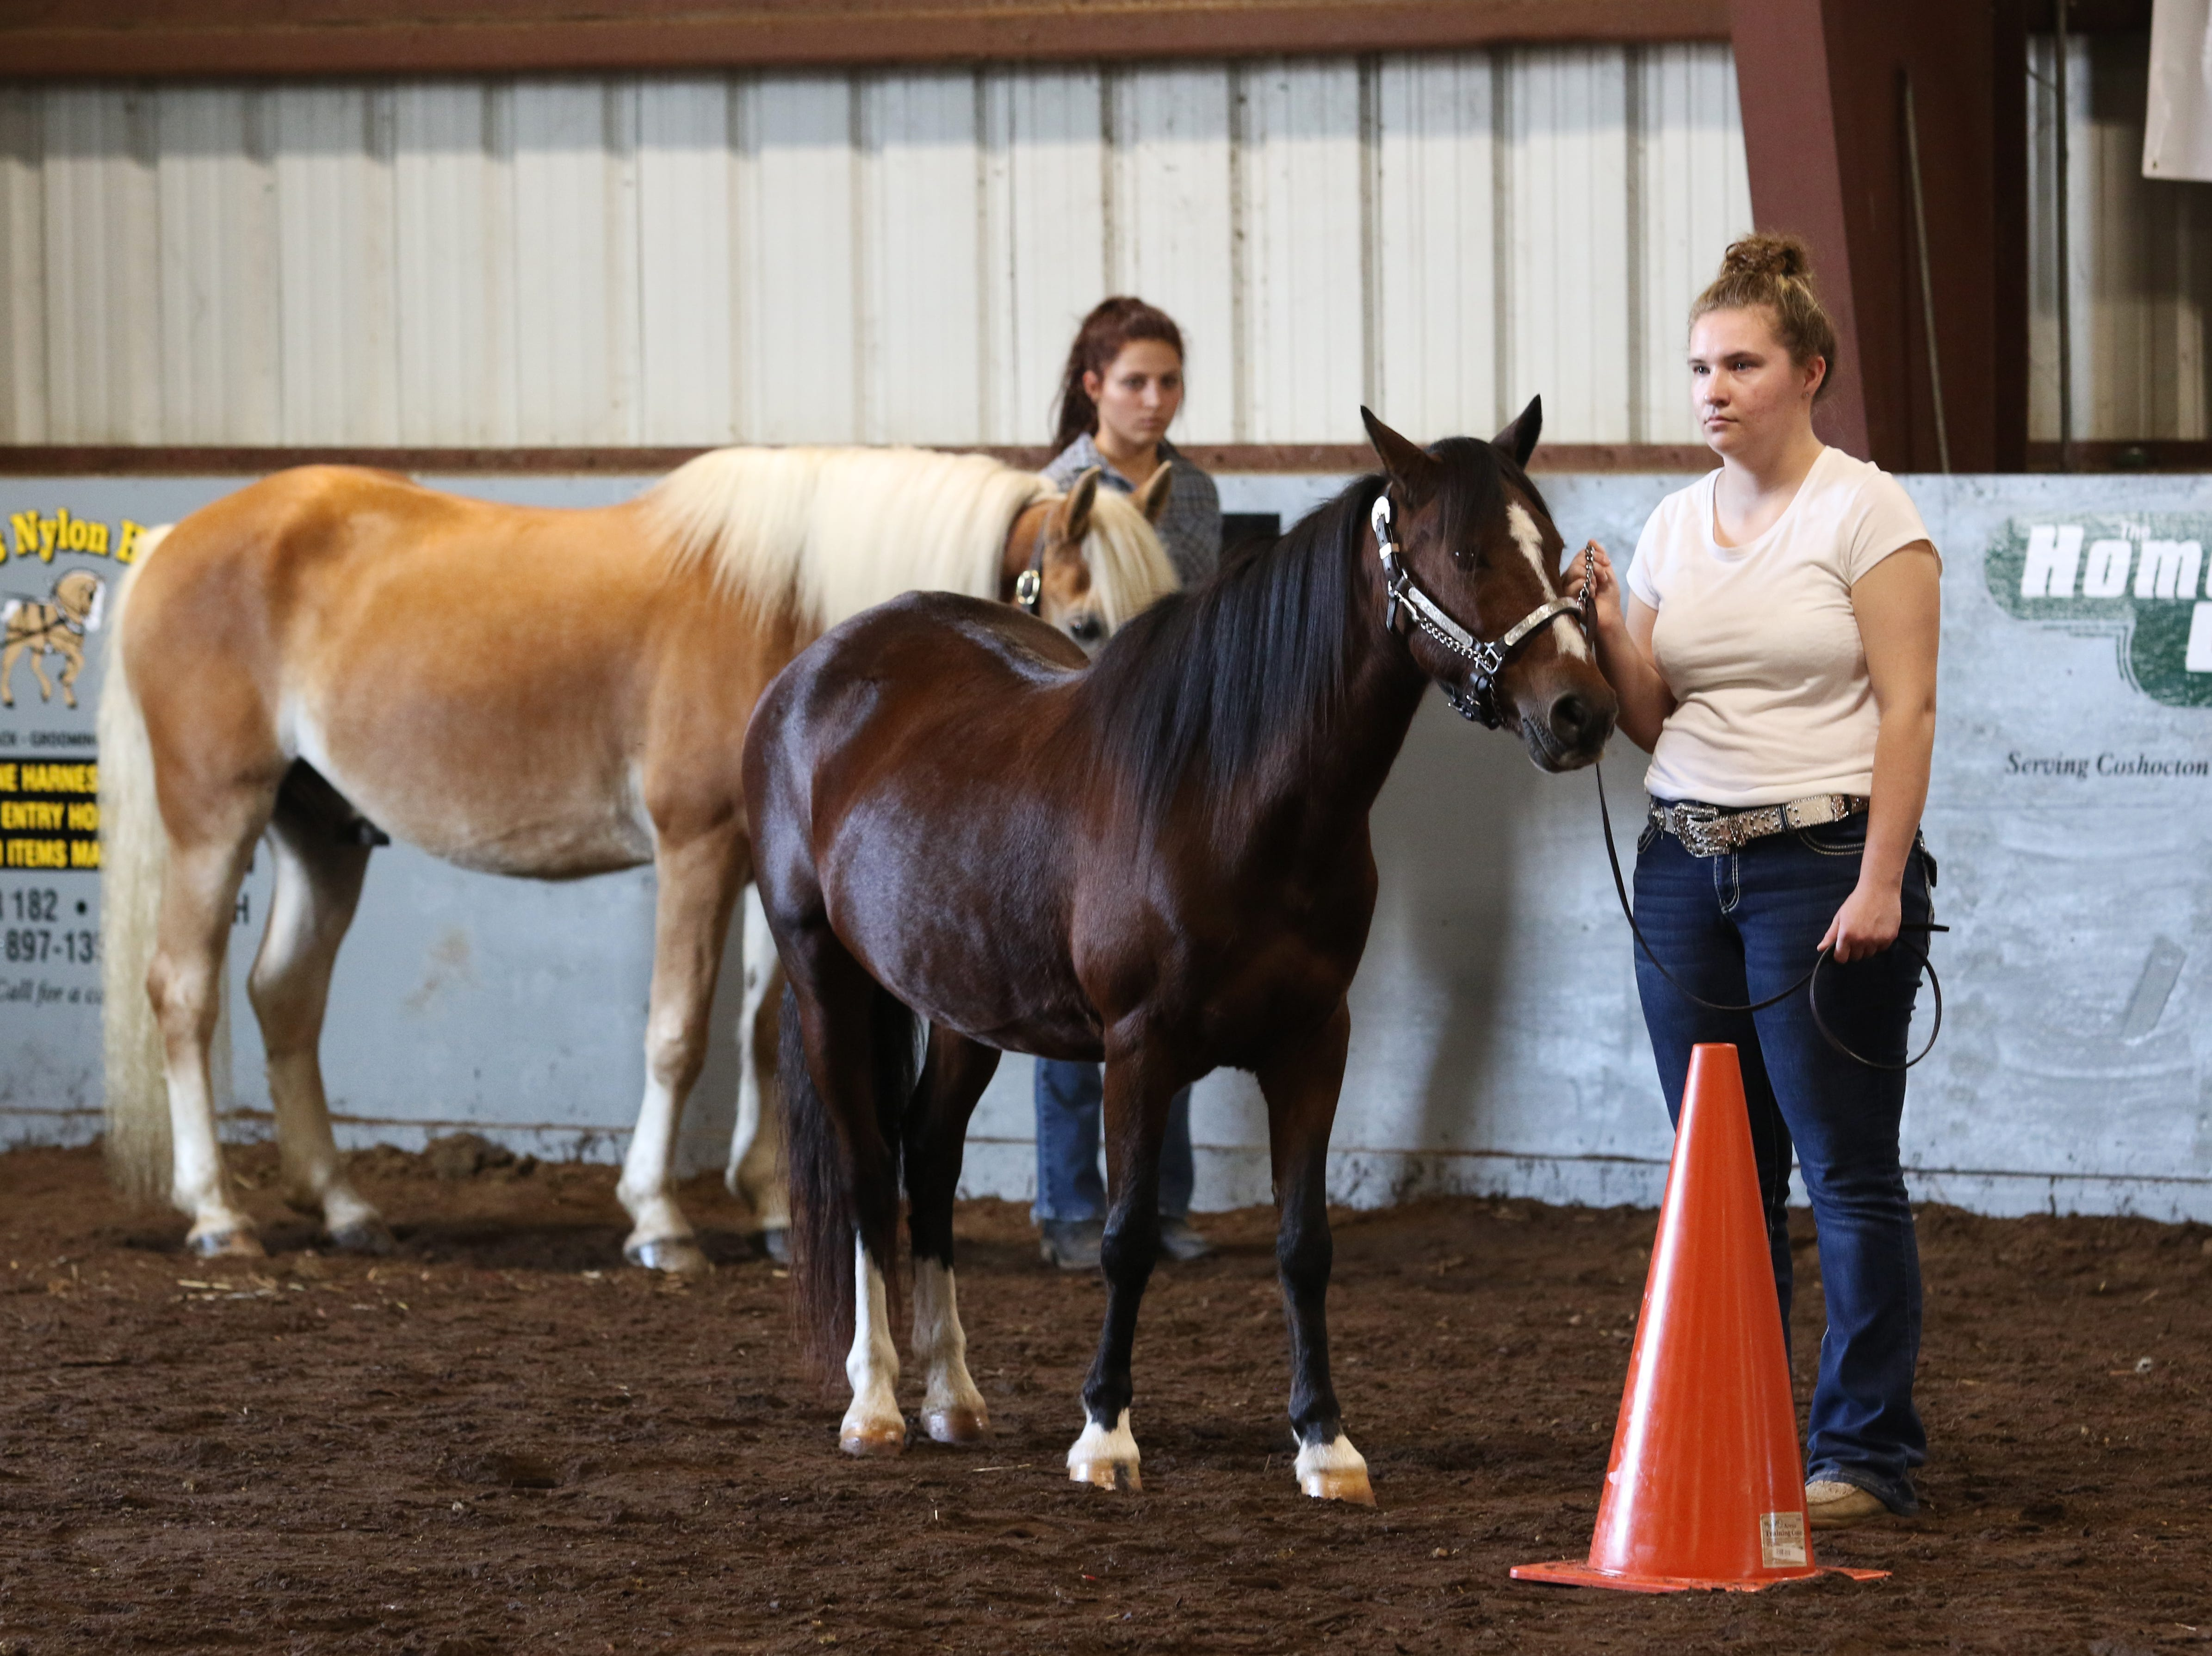 Shelby Cannon waits to show a horse during the Showman of Showmen at the Coshocton County Fair on Wednesday.